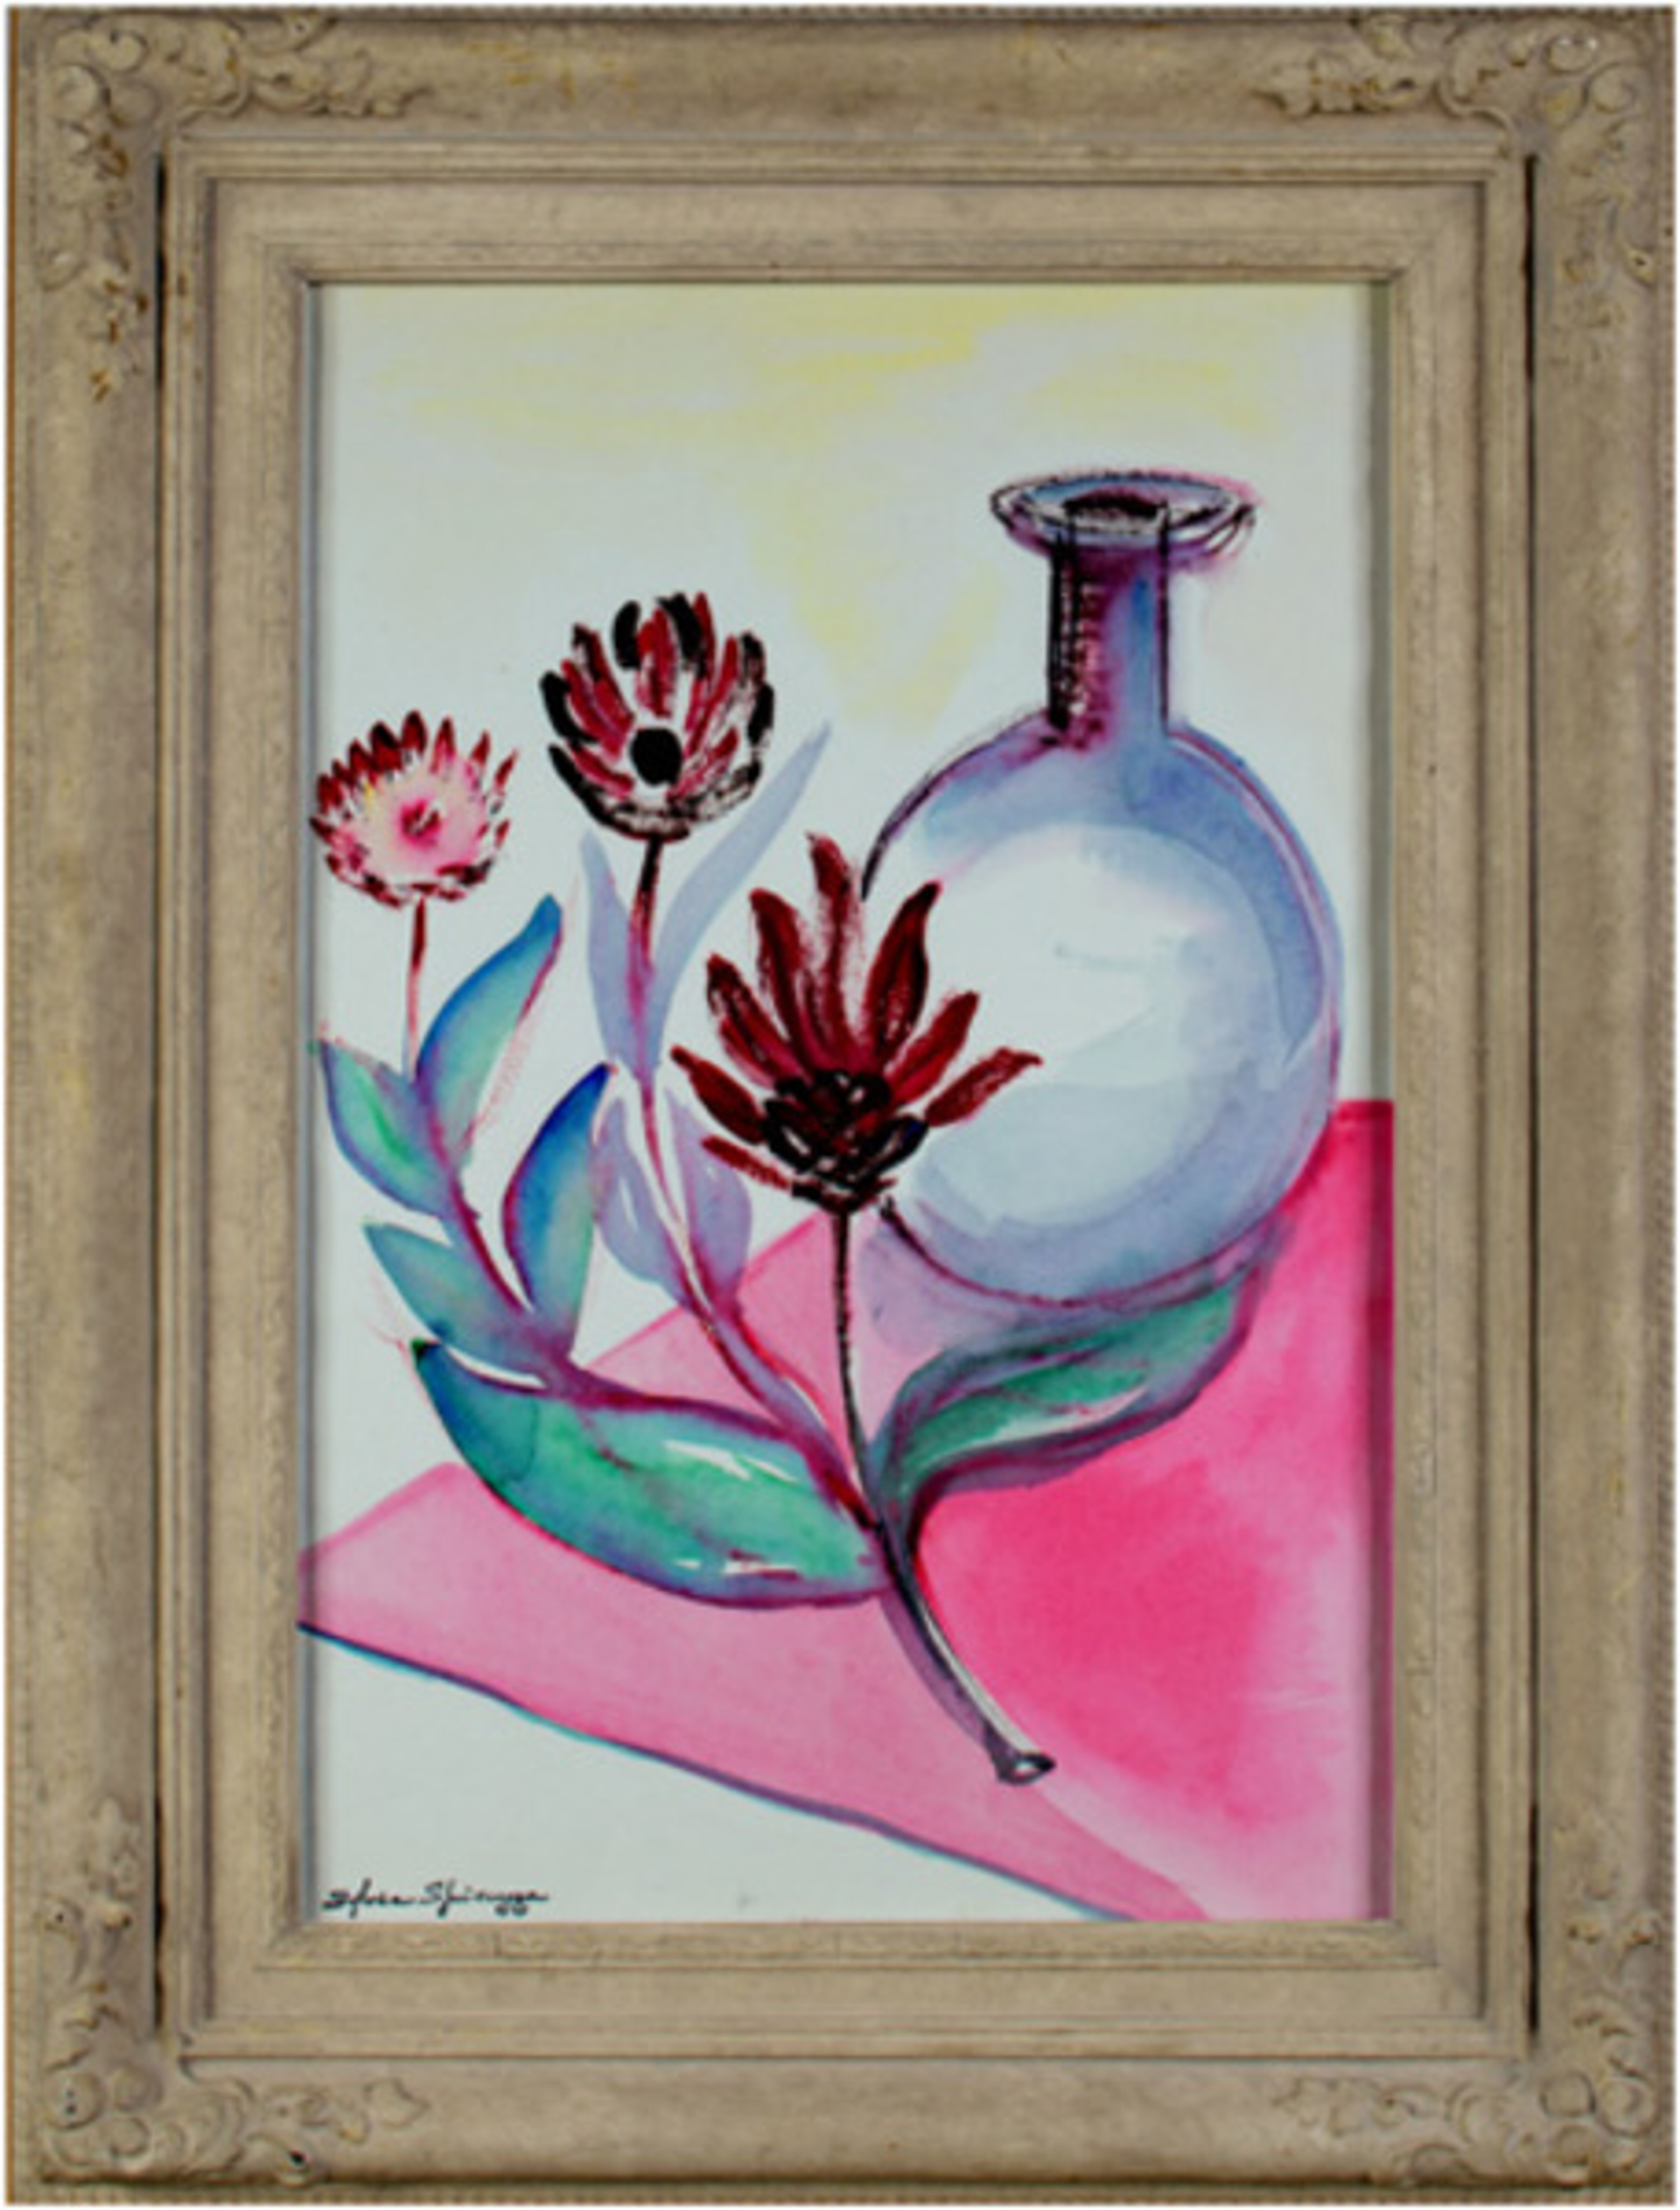 Glass Vase & Red Flowers on a Pink Tablecloth by Sylvia Spicuzza